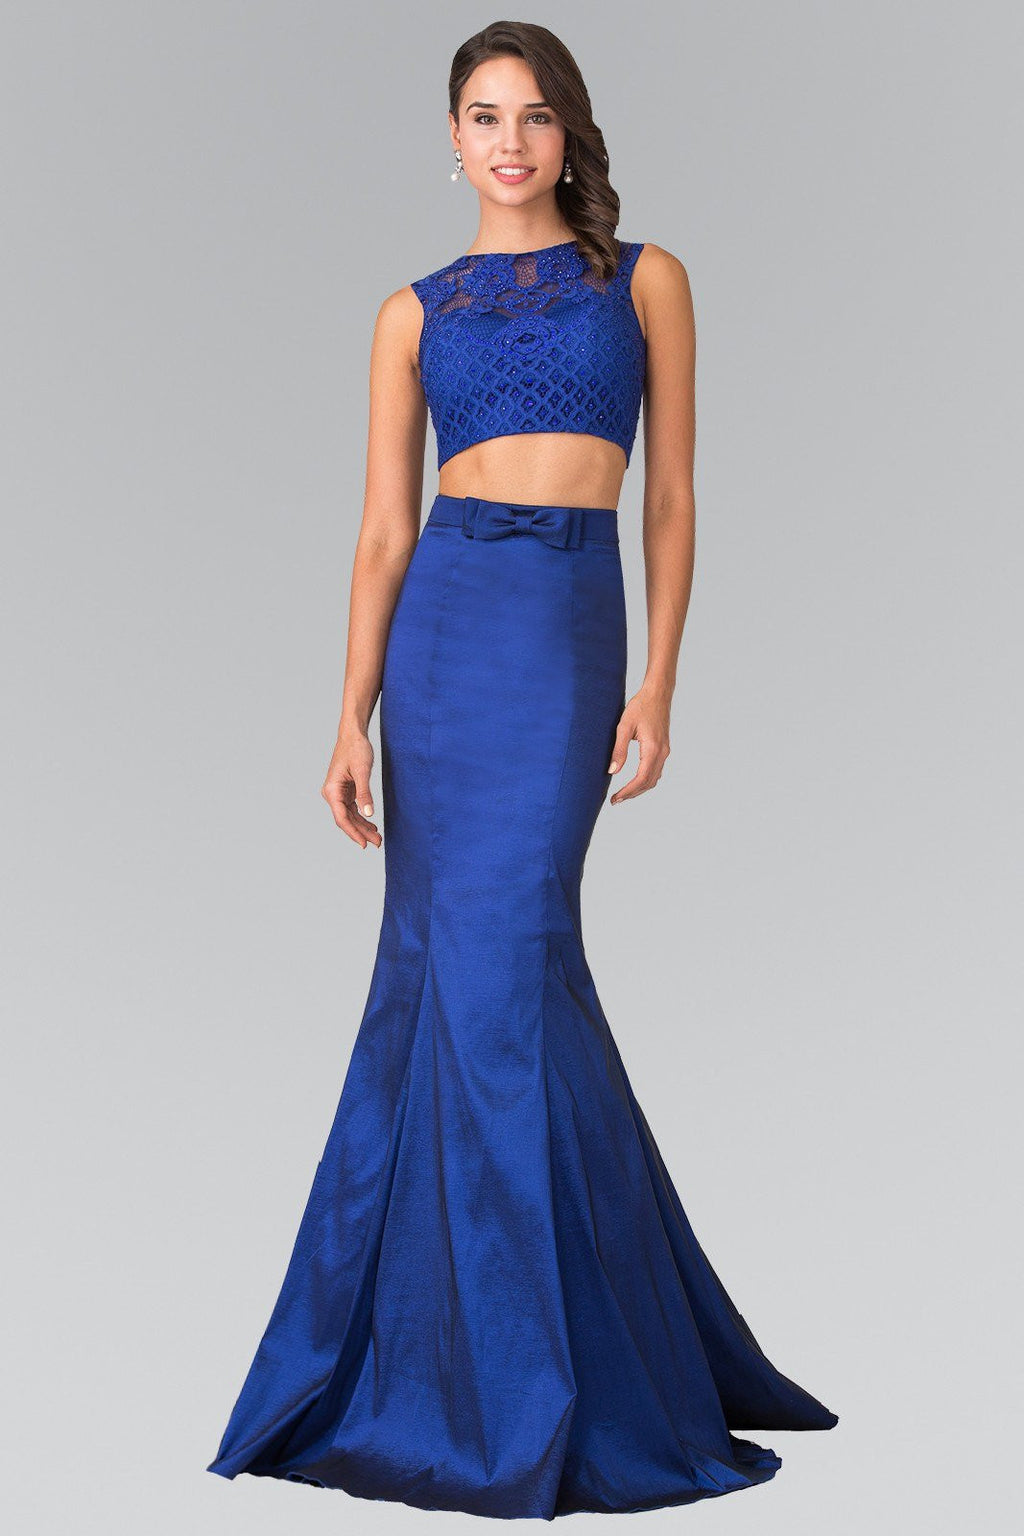 Sexy cheap 2 piece prom dresses  #Gl2354 - Simply Fab Dress